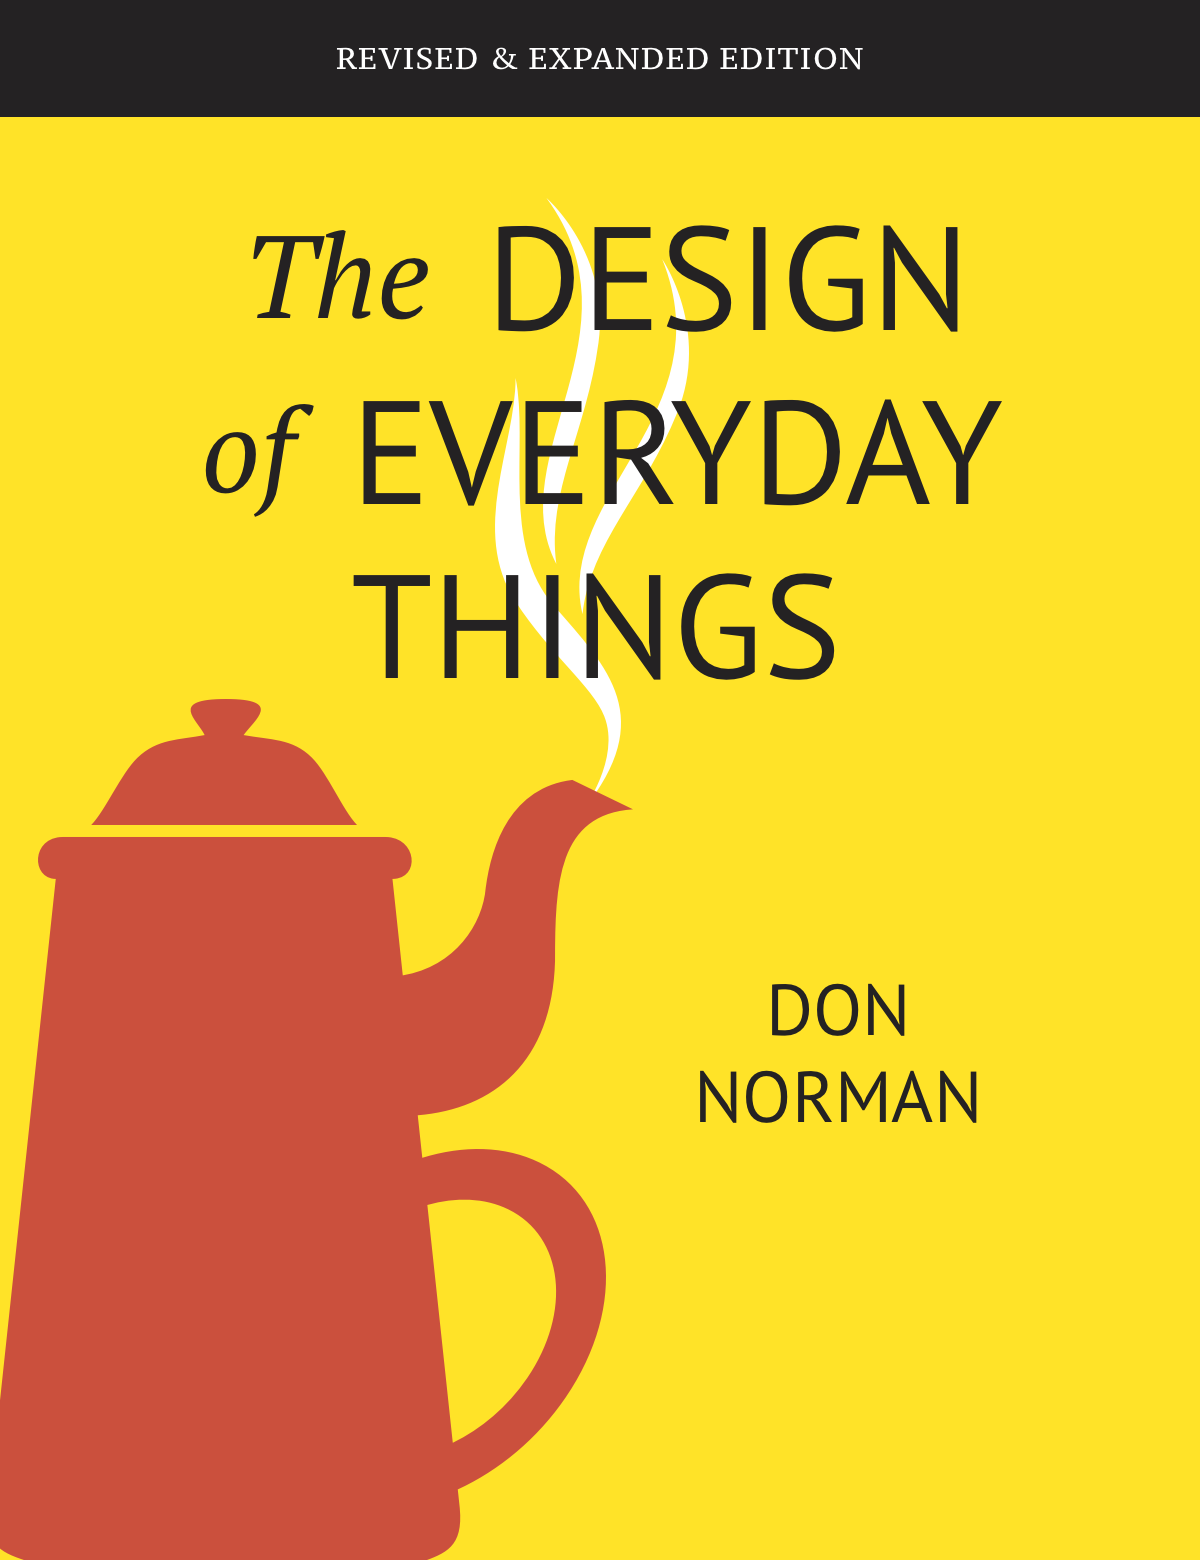 """7 Principles of Design from """"The Design of Everyday Things"""" 